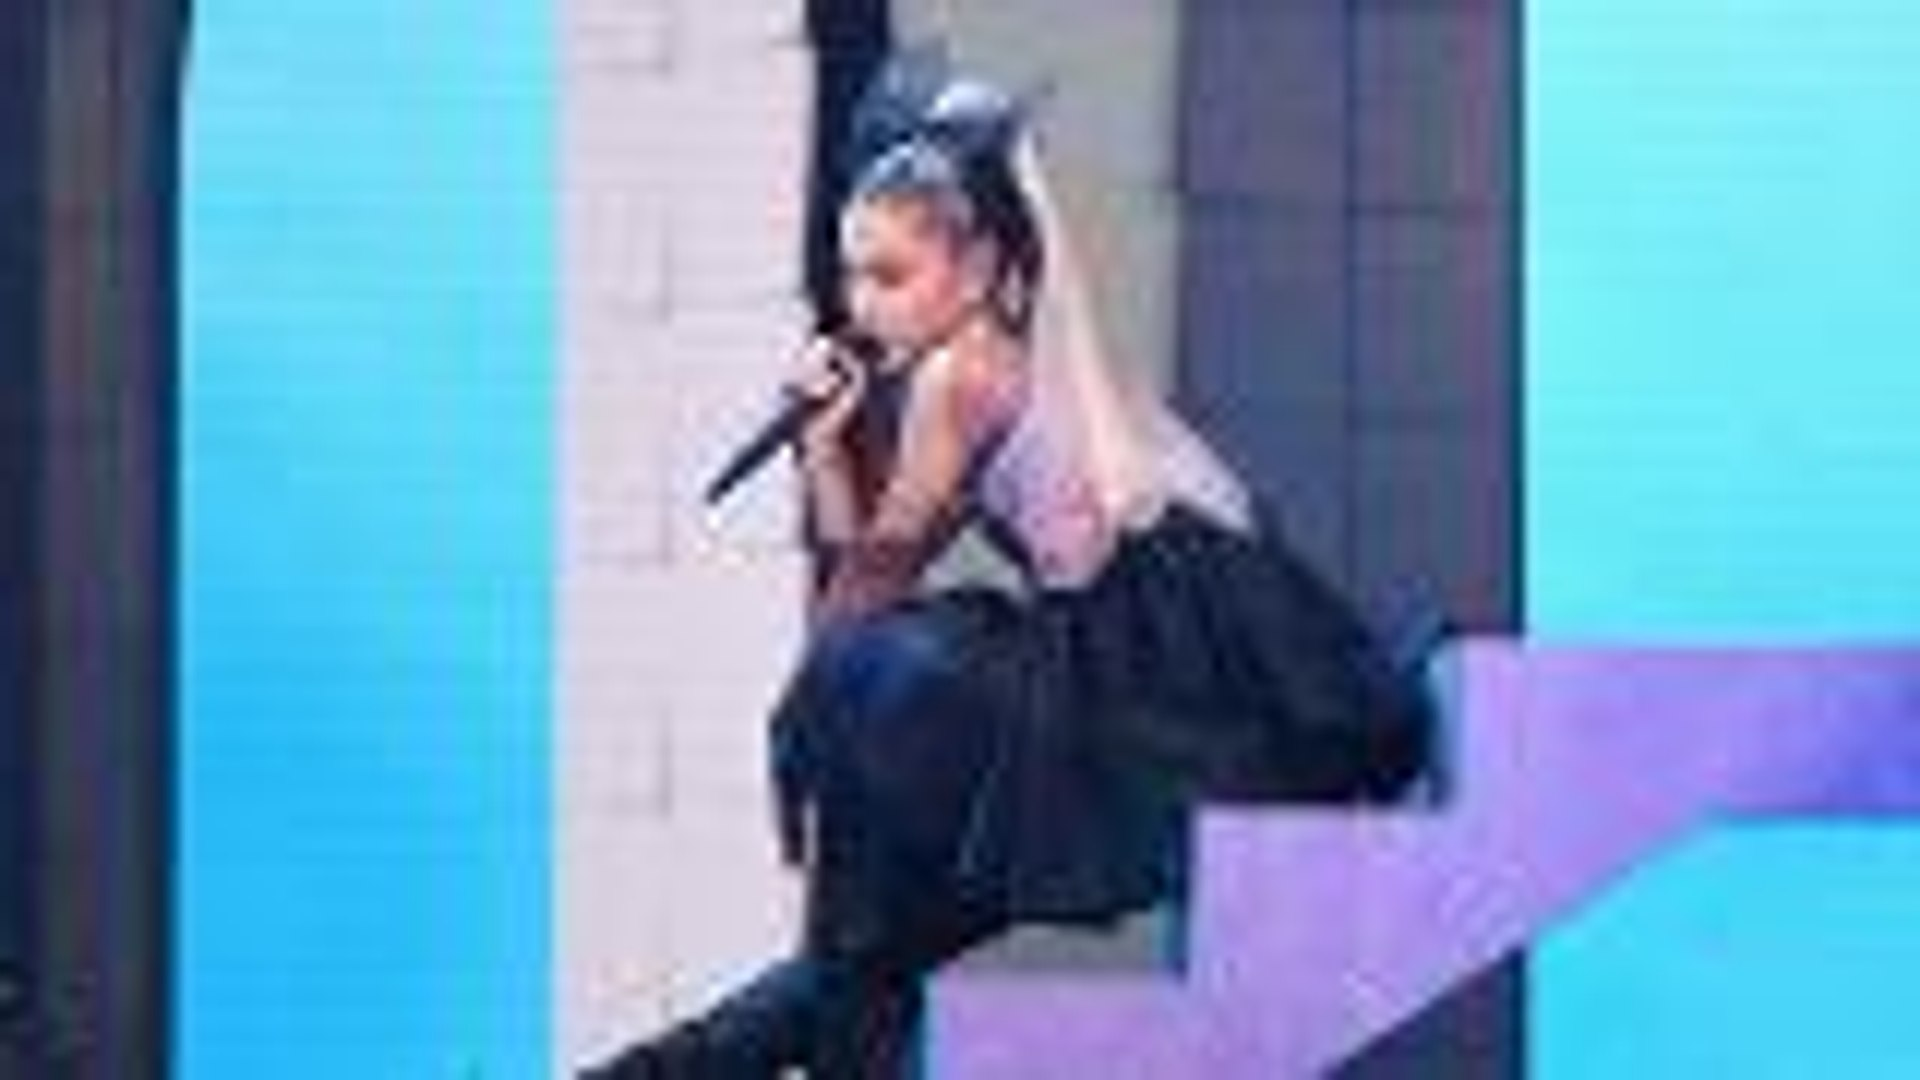 Ariana Grande Opens the Billboard Music Awards With Performance of 'No Tears Left to Cry'